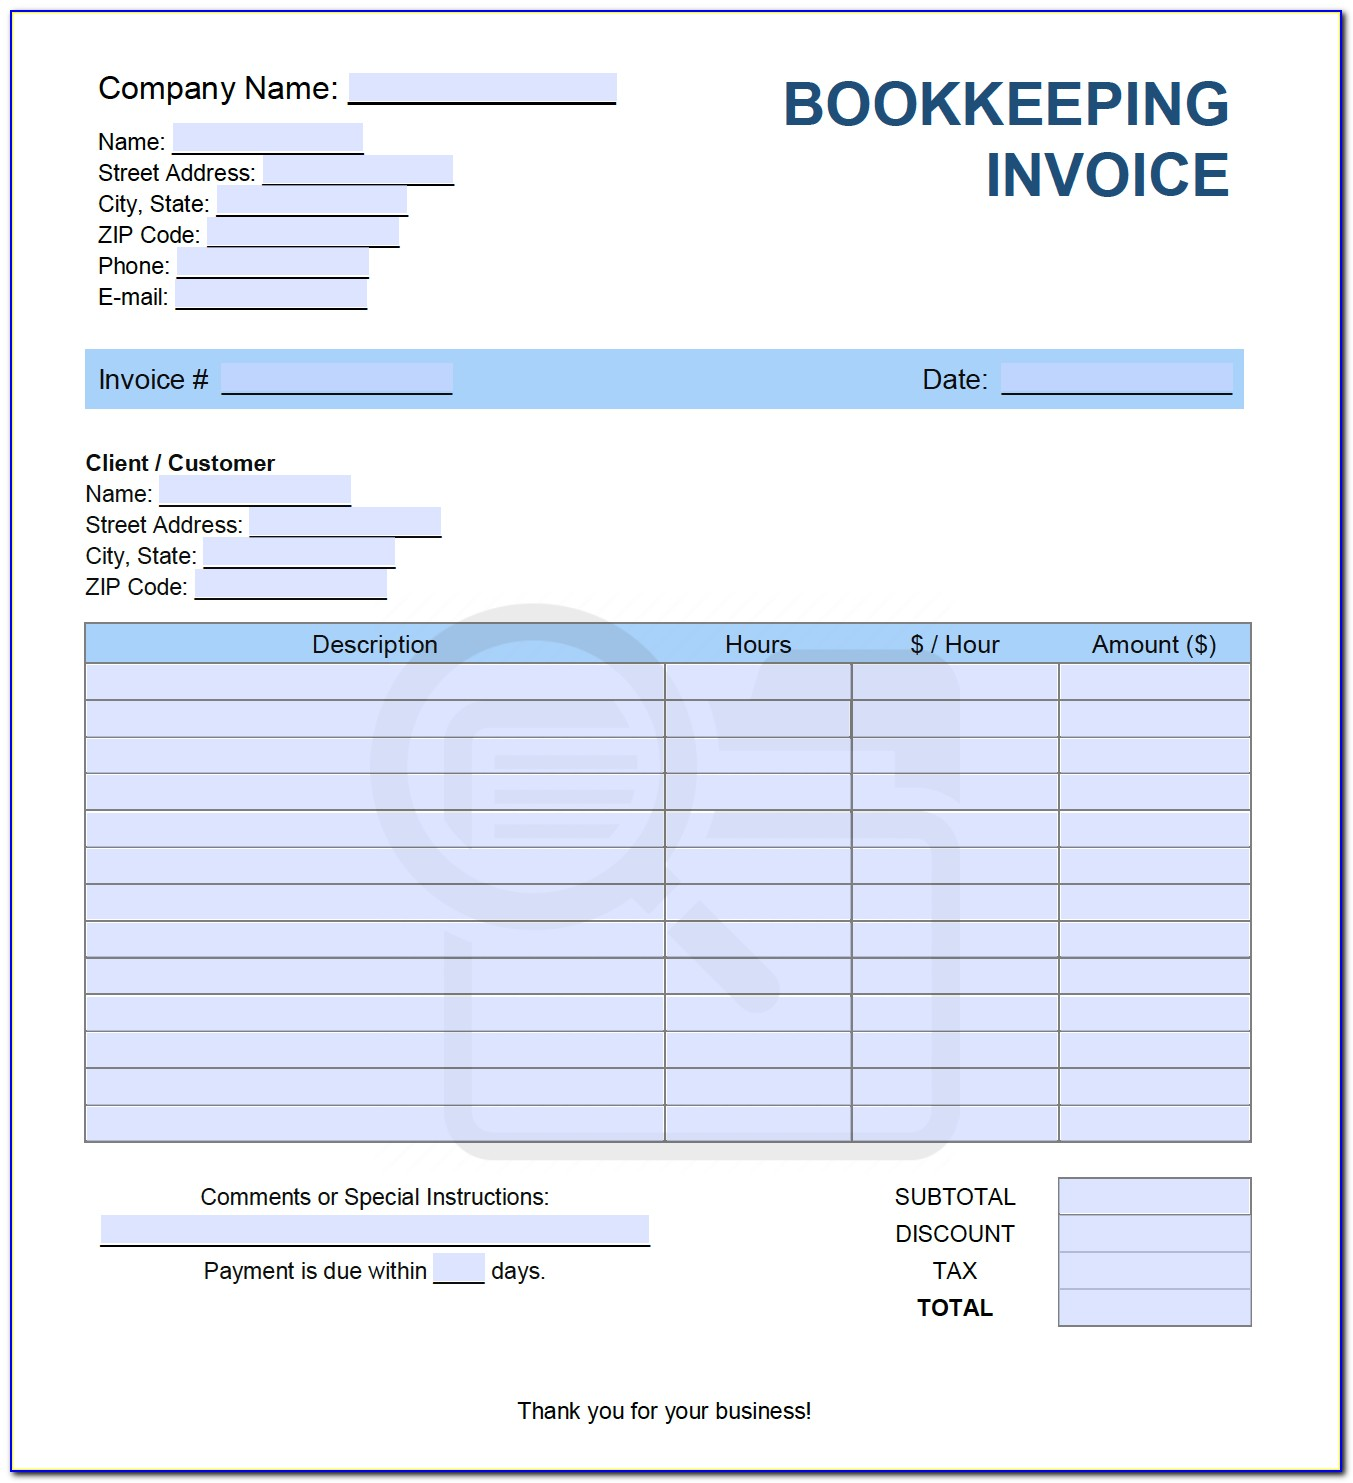 Excel Bookkeeping Spreadsheet Free Download